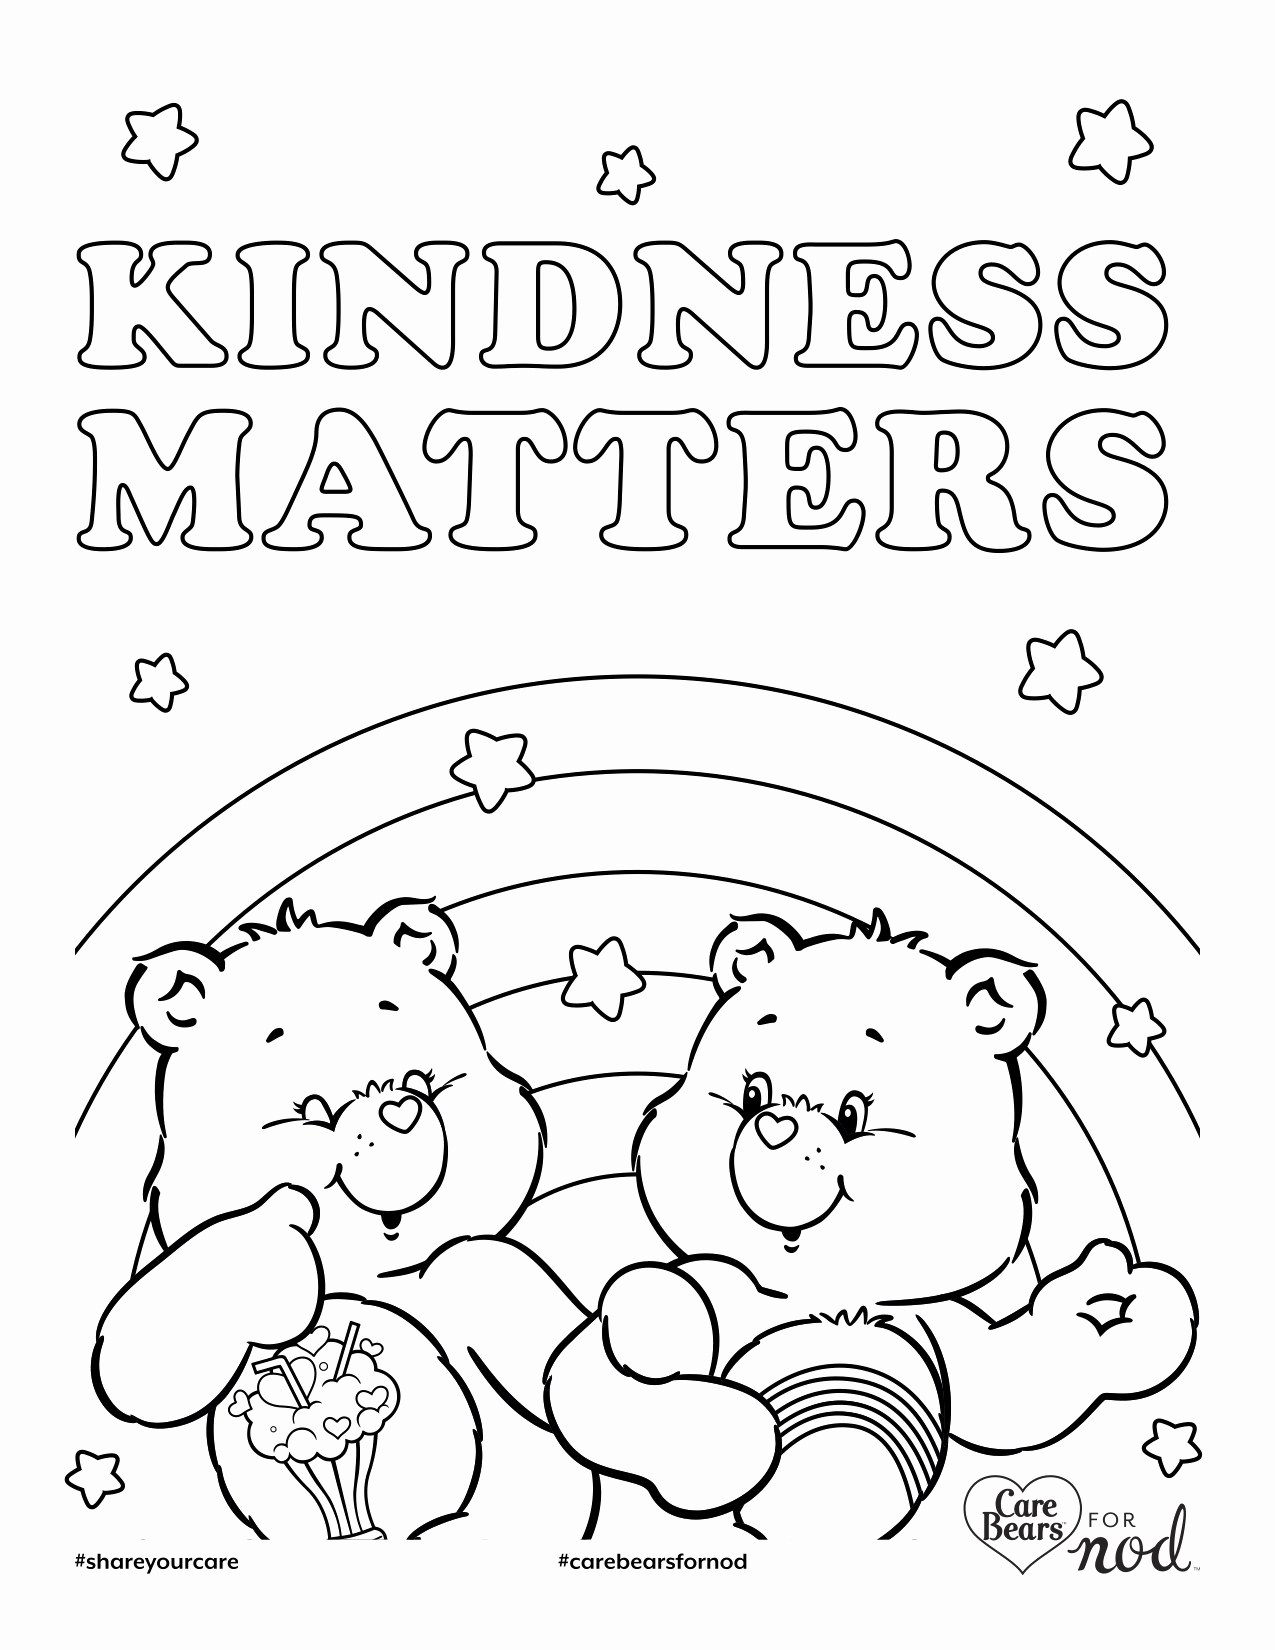 Kindness Coloring Pages Printable At Getcolorings